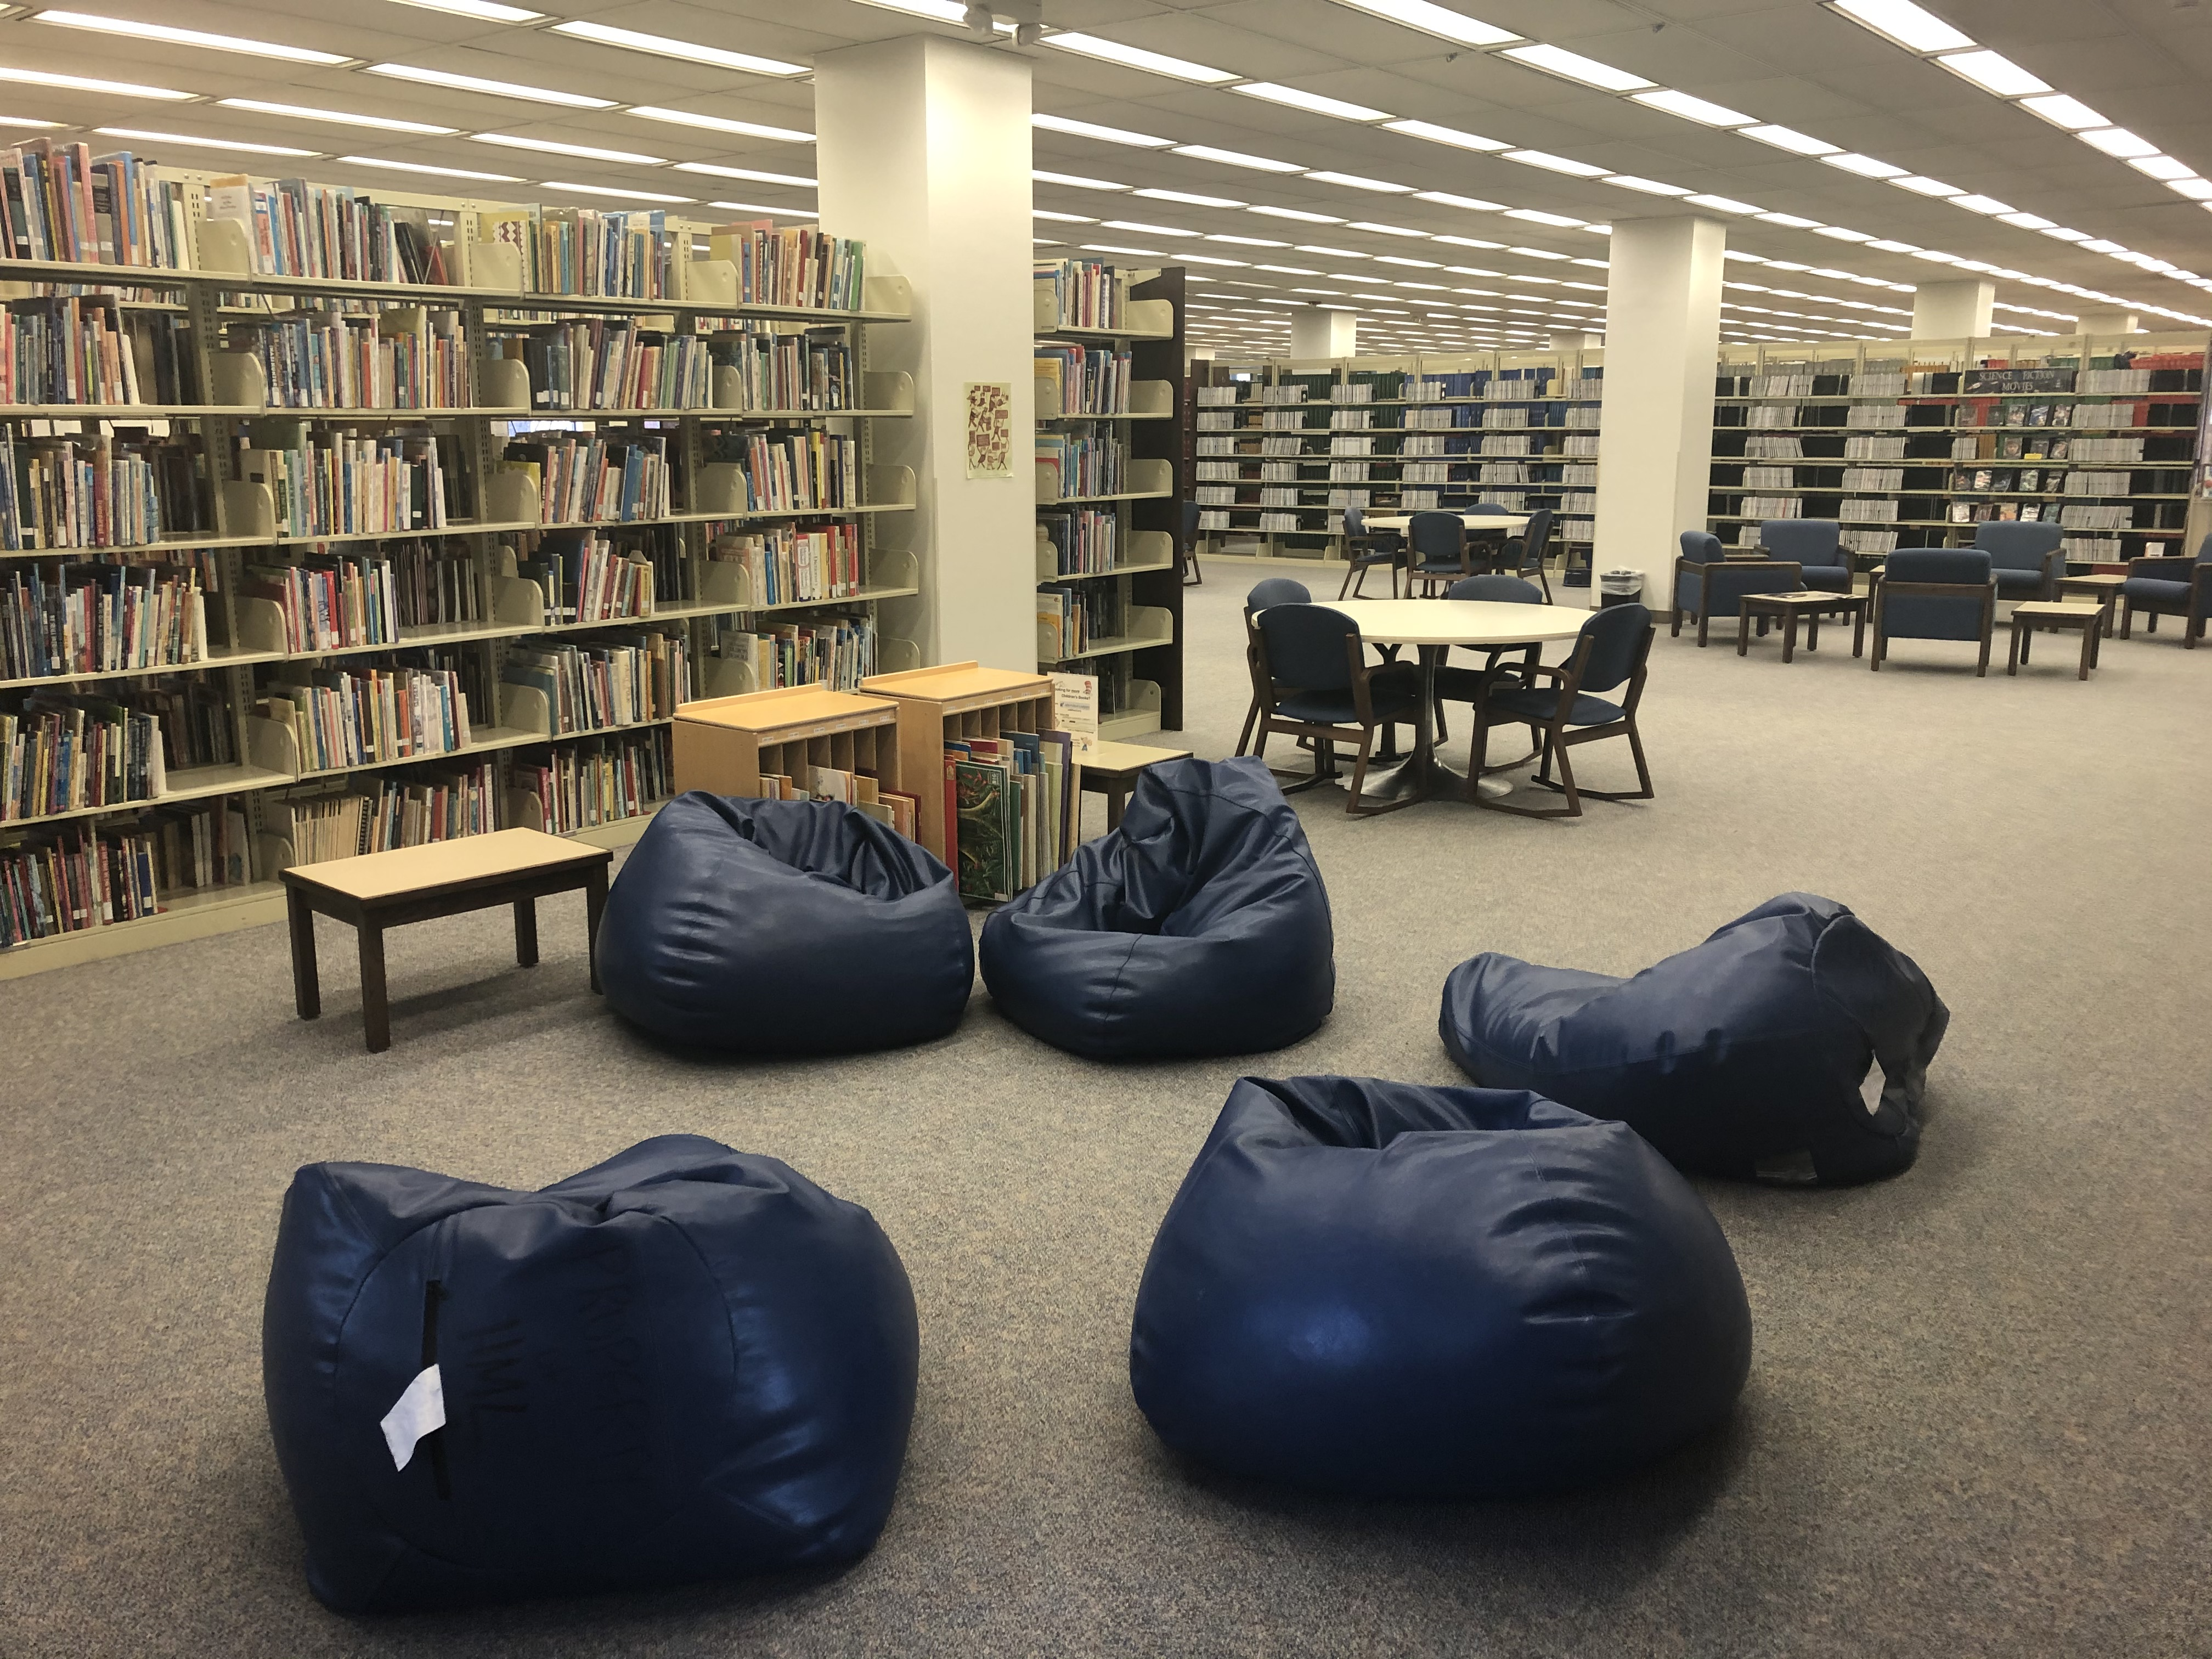 Five bean bag chairs in a circle near a shelf of library books.